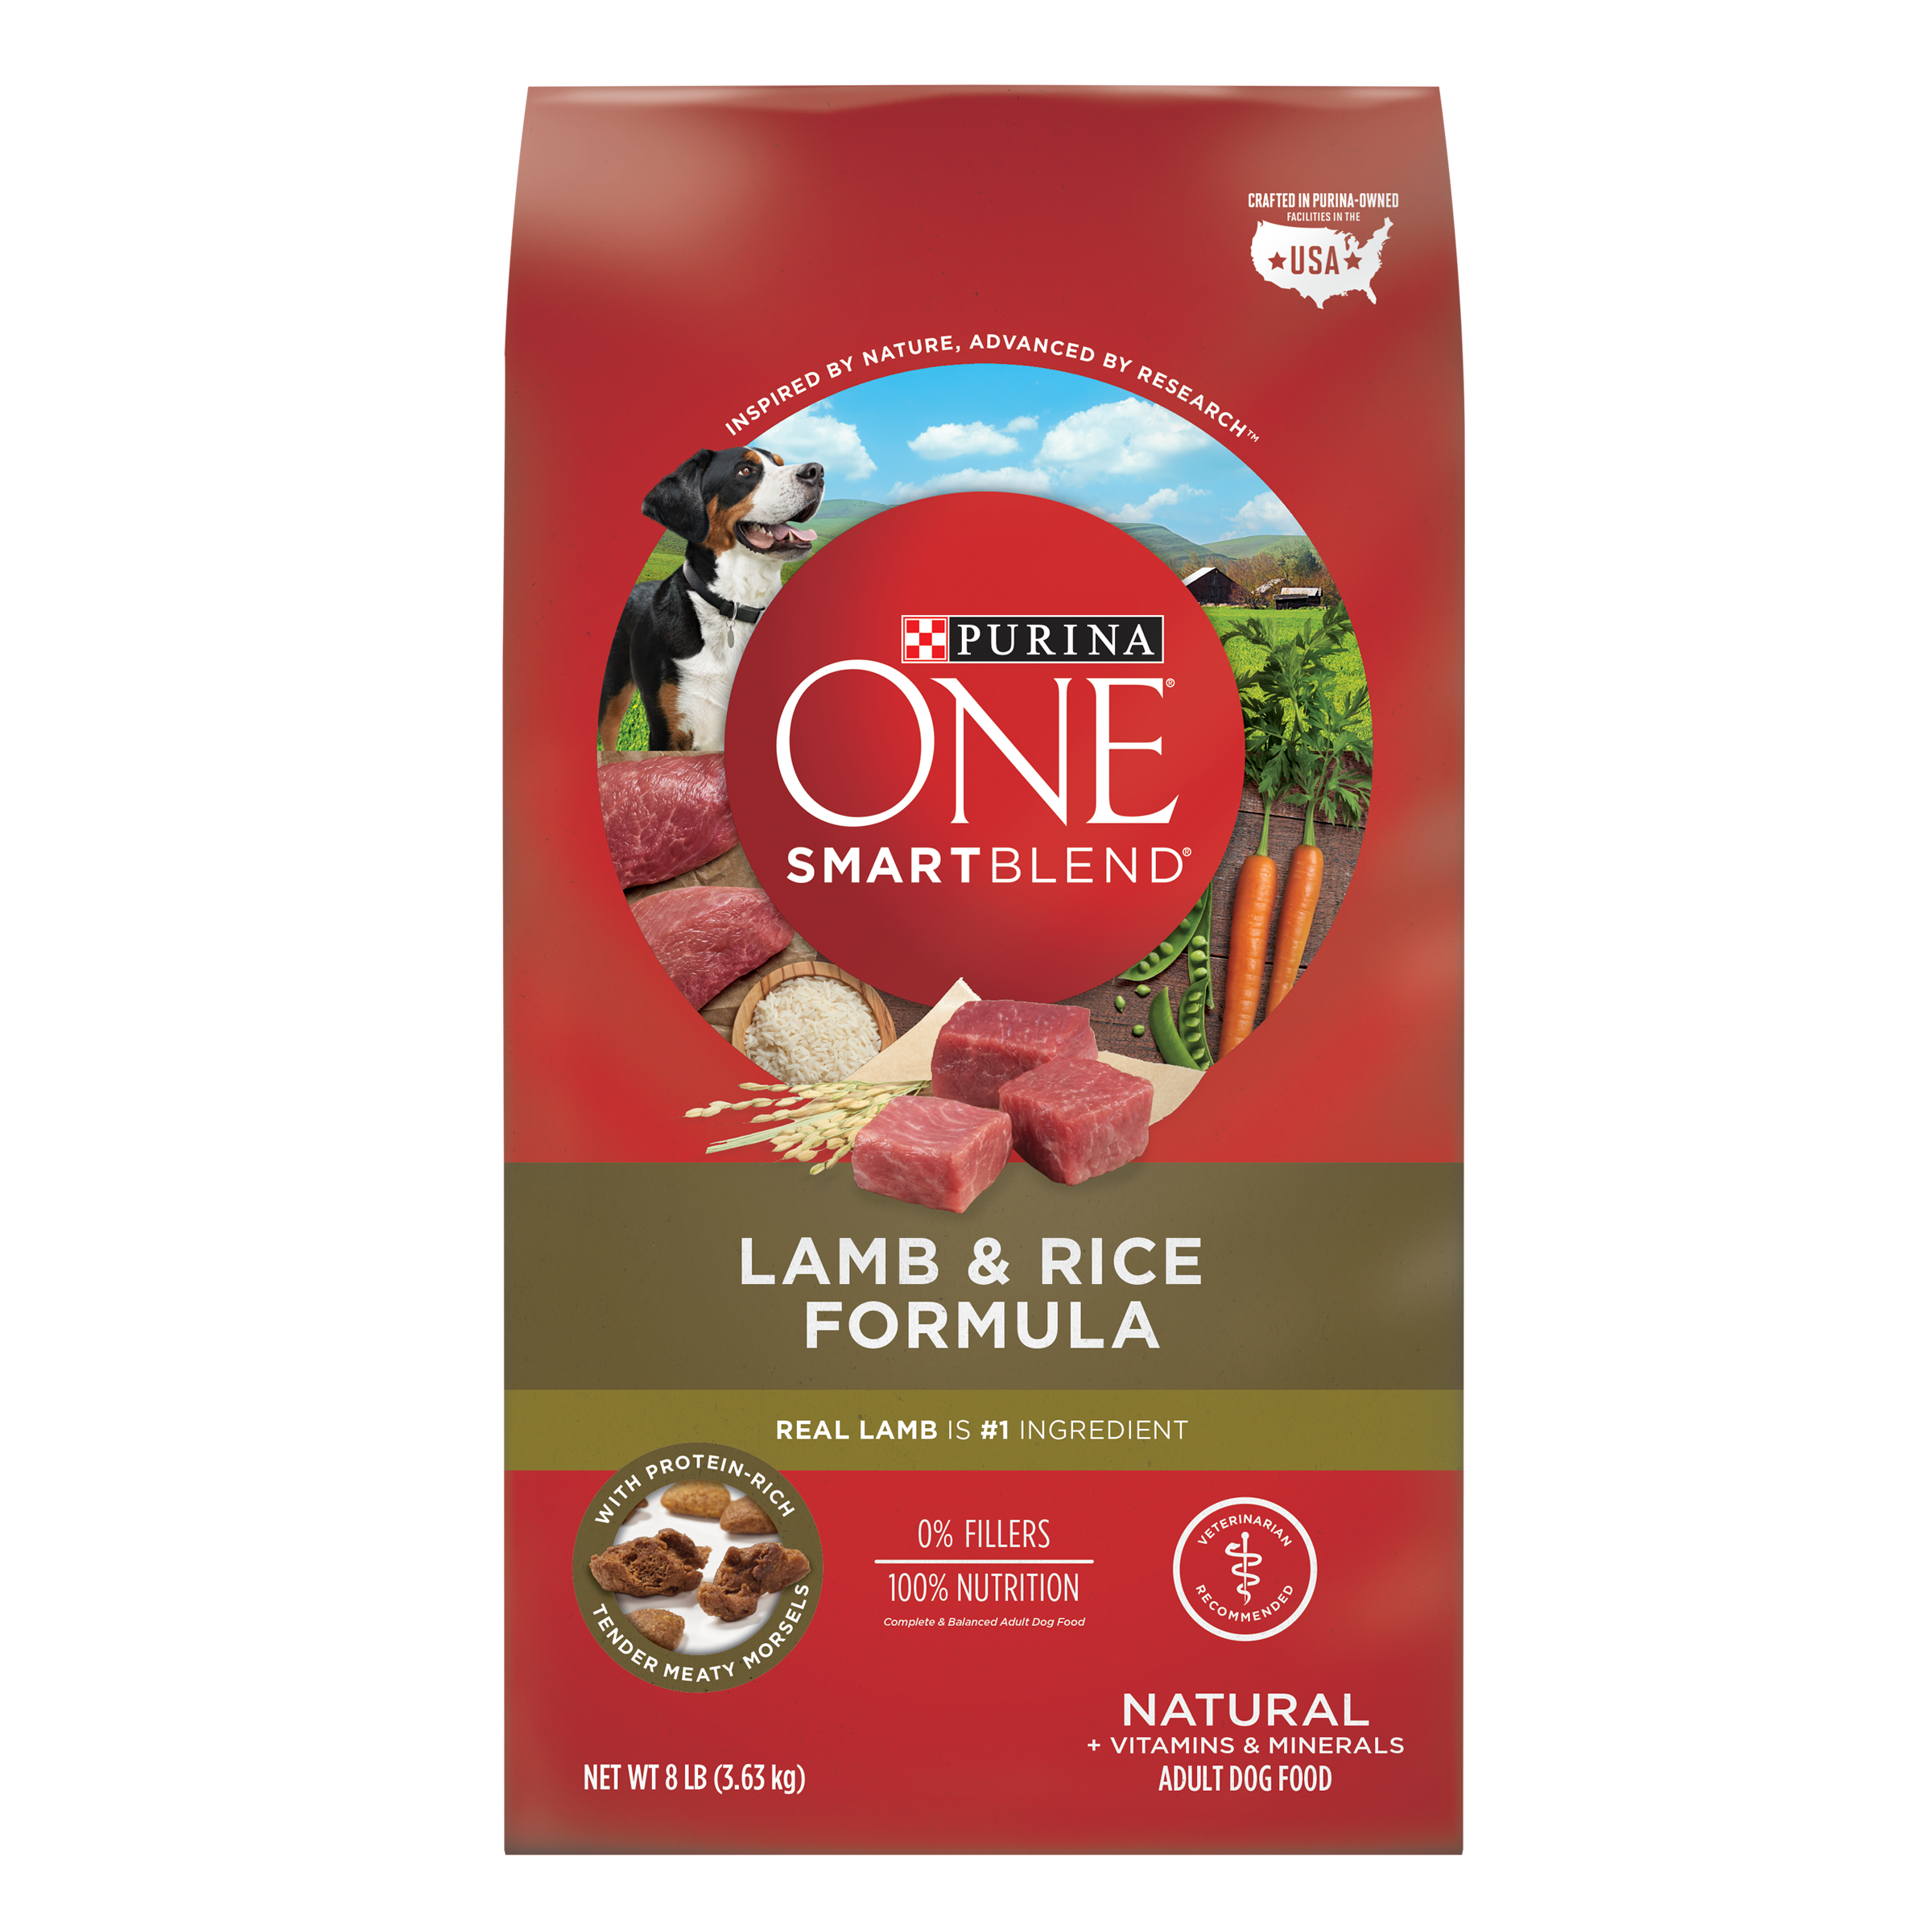 Lamb over rice png. Purina one smartblend natural